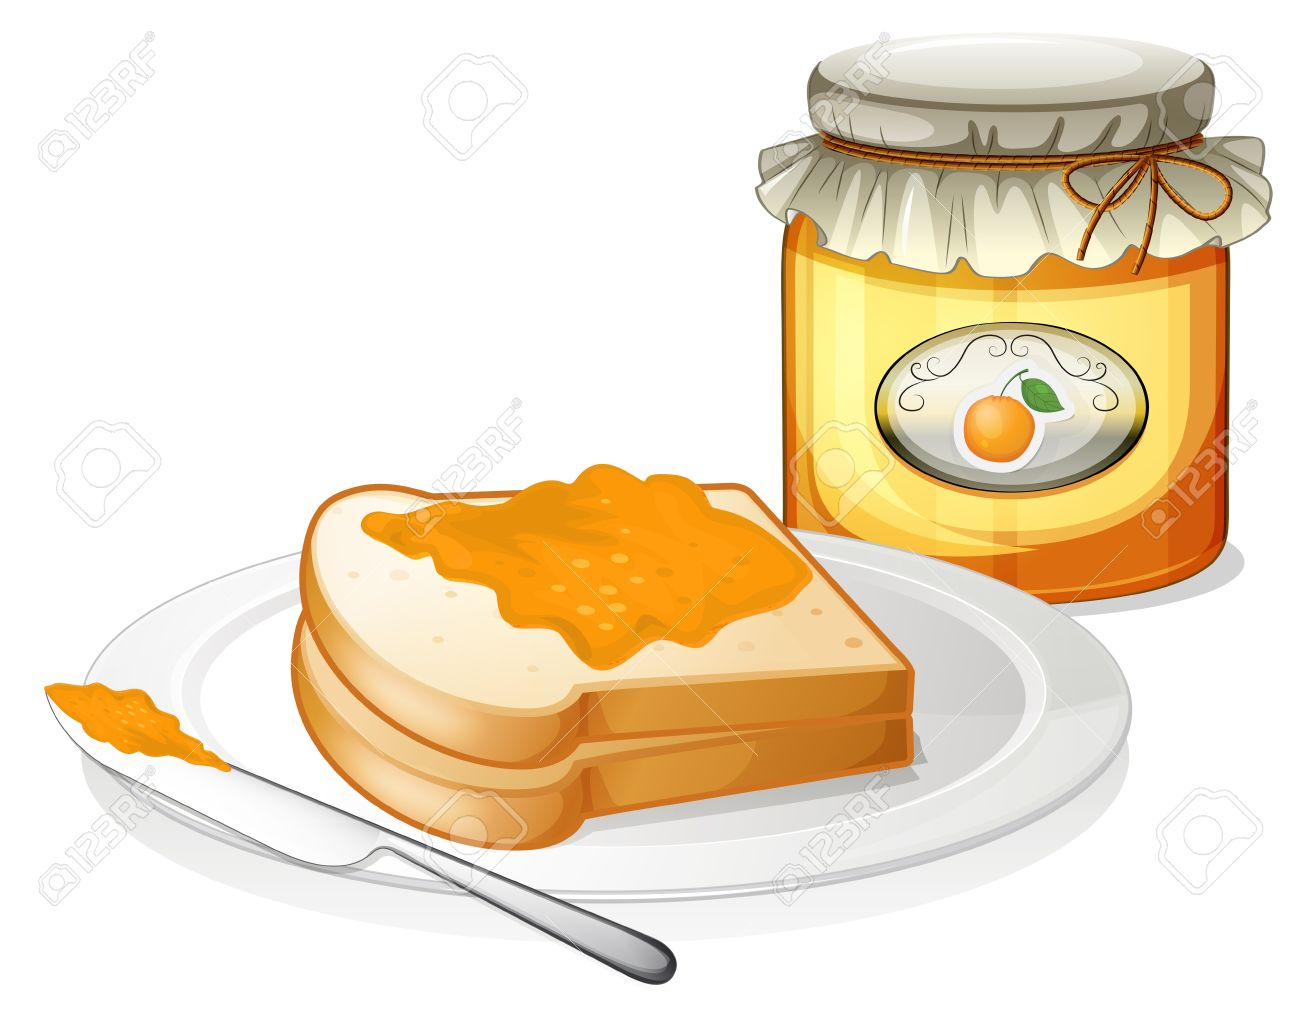 Illustration of a sliced bread with an orange jam on a white background Stock Vector - 19301498